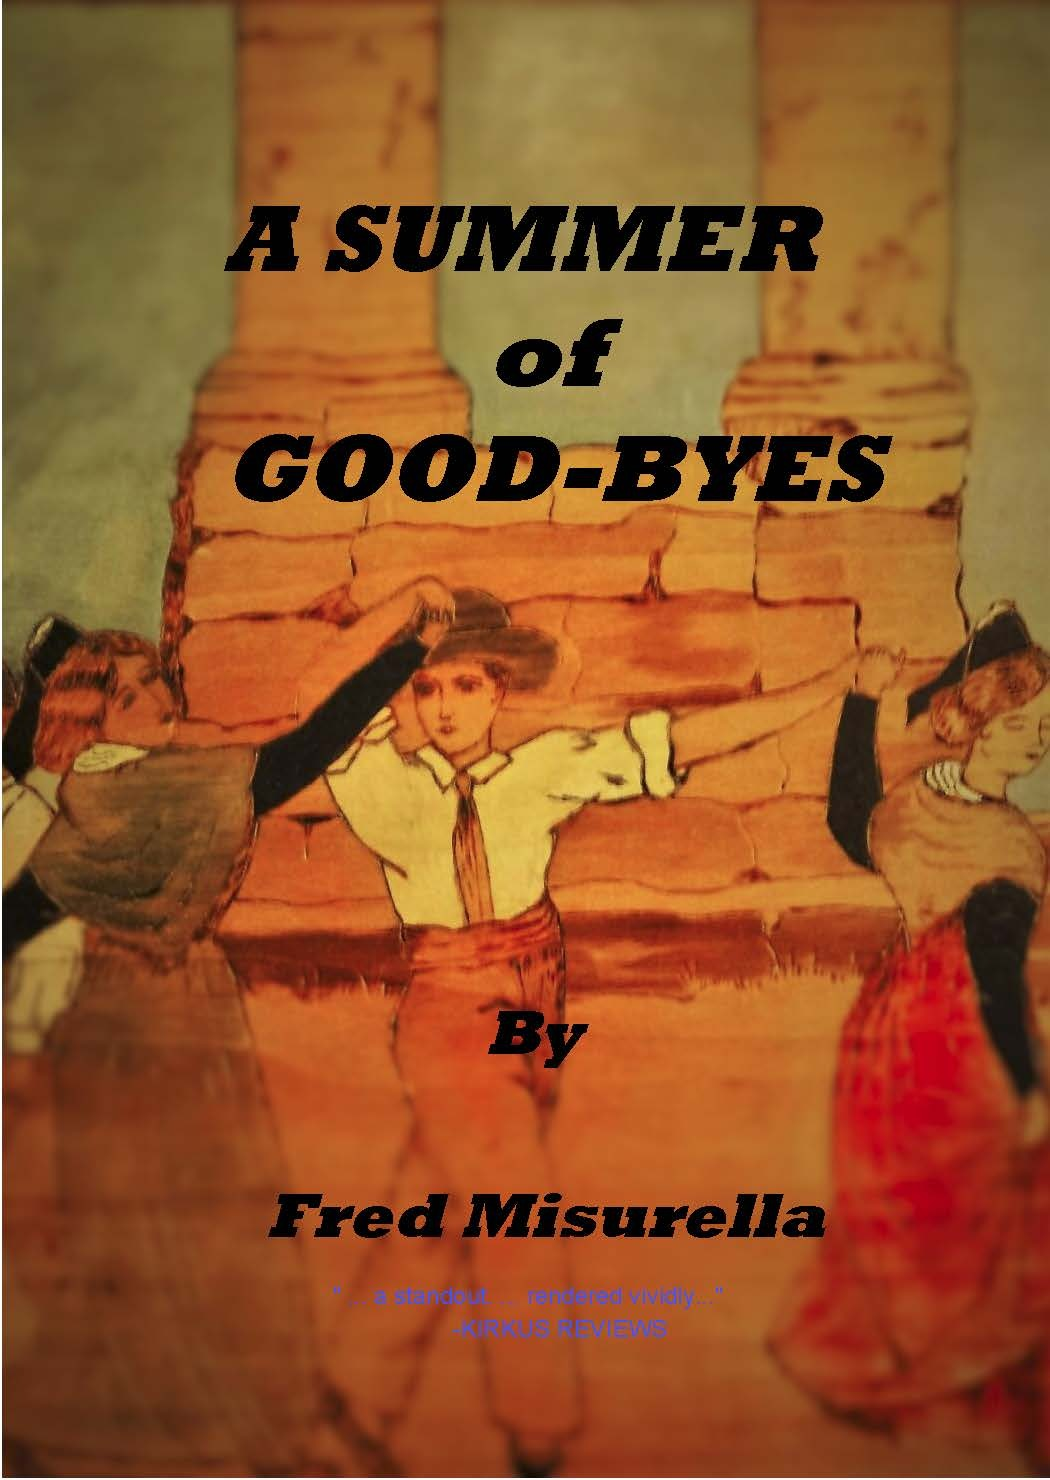 Summercover with edited kirkus